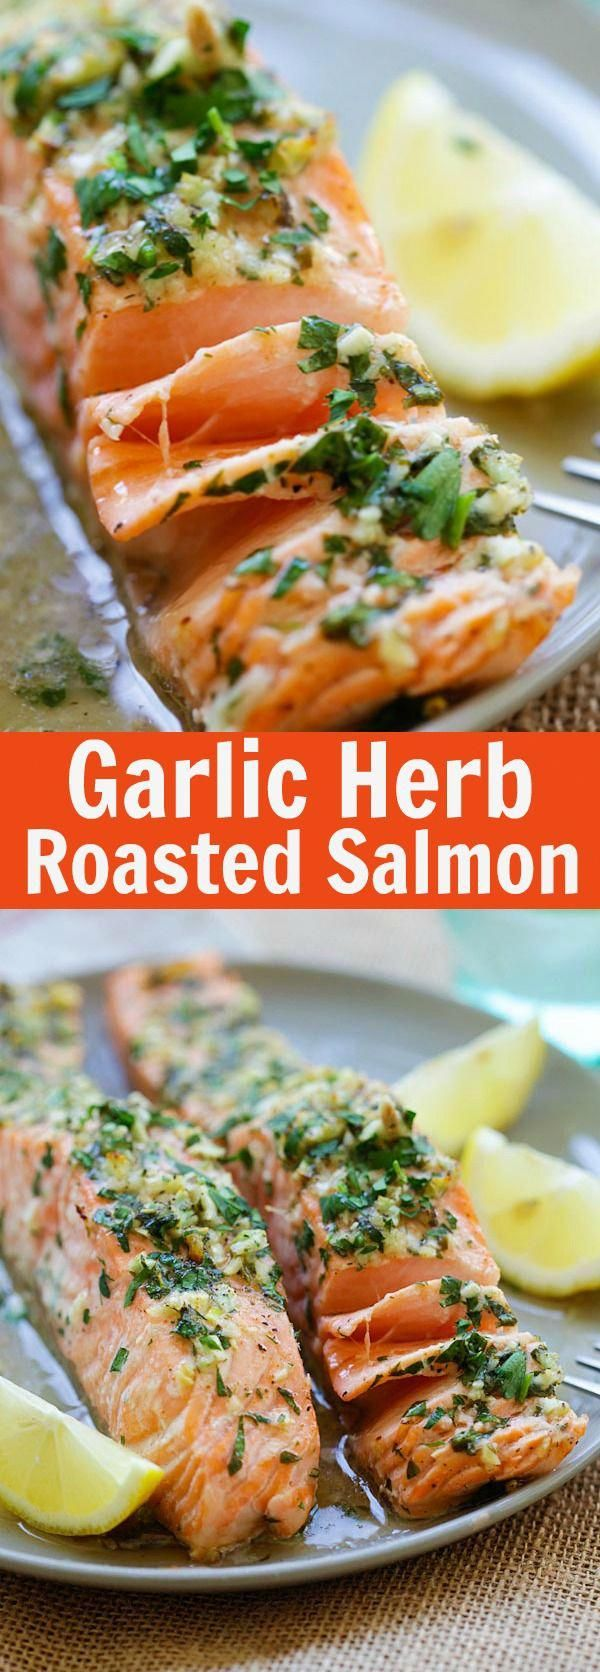 Garlic Herb Roasted Salmon – best roasted salmon recipe ever! Made with butter, garlic, herb, lemon...